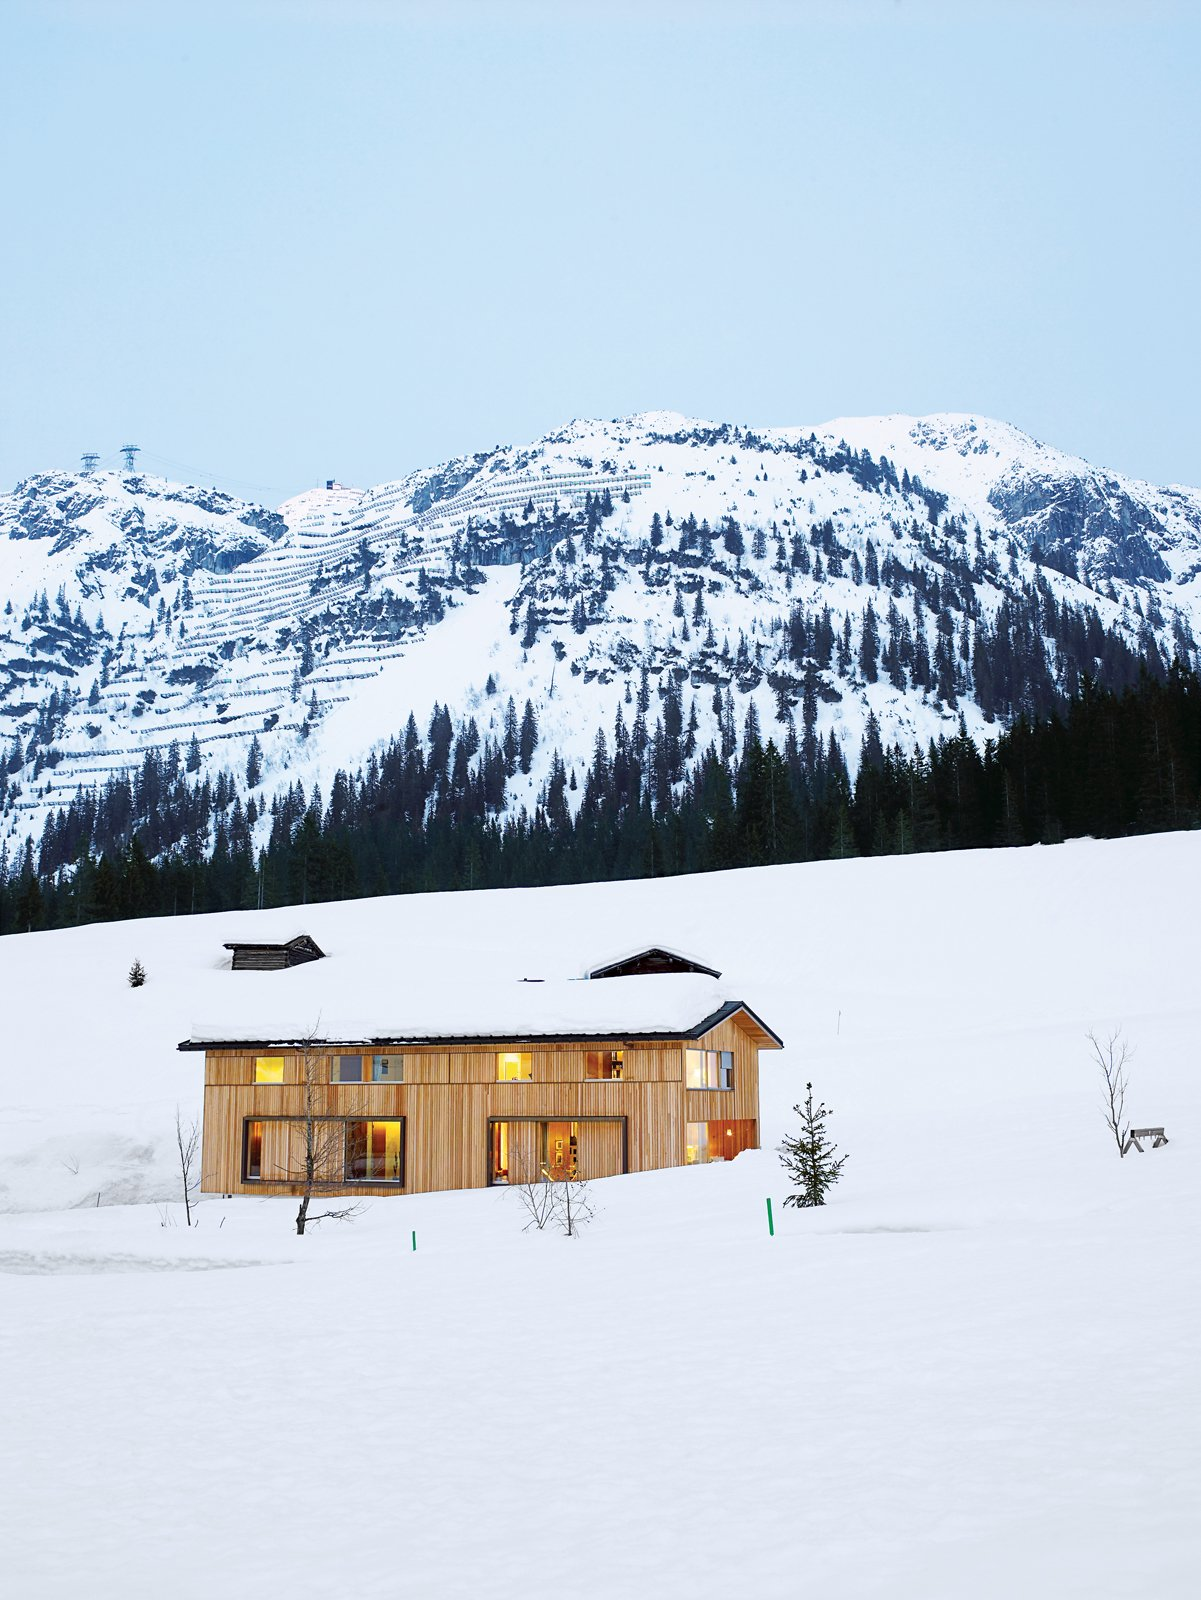 The Strolz House nestles in the winter snow at the edge of the Austrian village of Lech. Large wooden shutters help protect the windows against avalanche damage.  Photo 3 of 8 in Snow Proofed Hillside Family Home in Austria